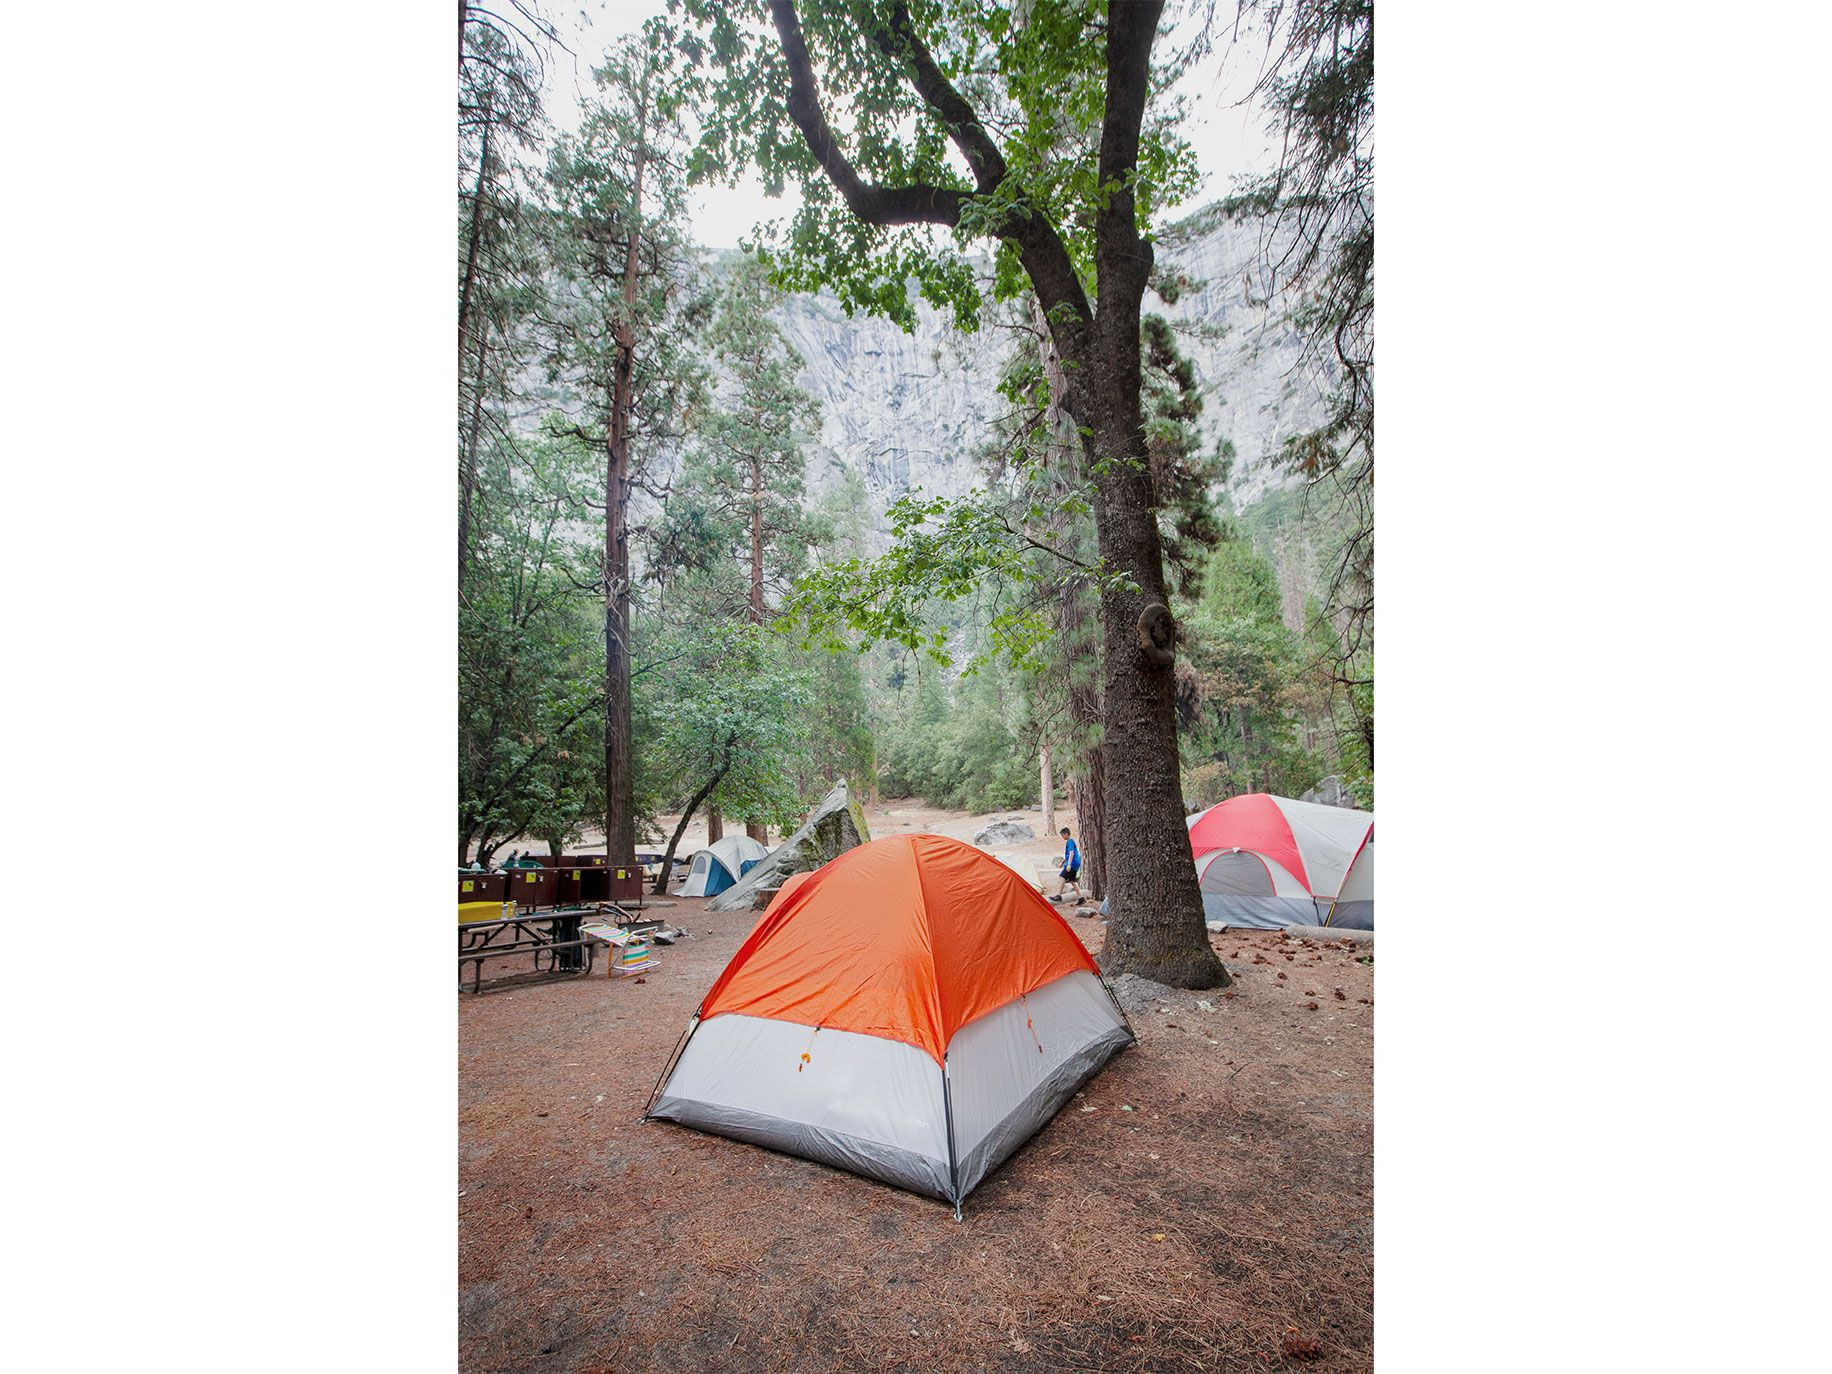 Yosemite's historic Camp 4, the legacy of climber Tom Frost.